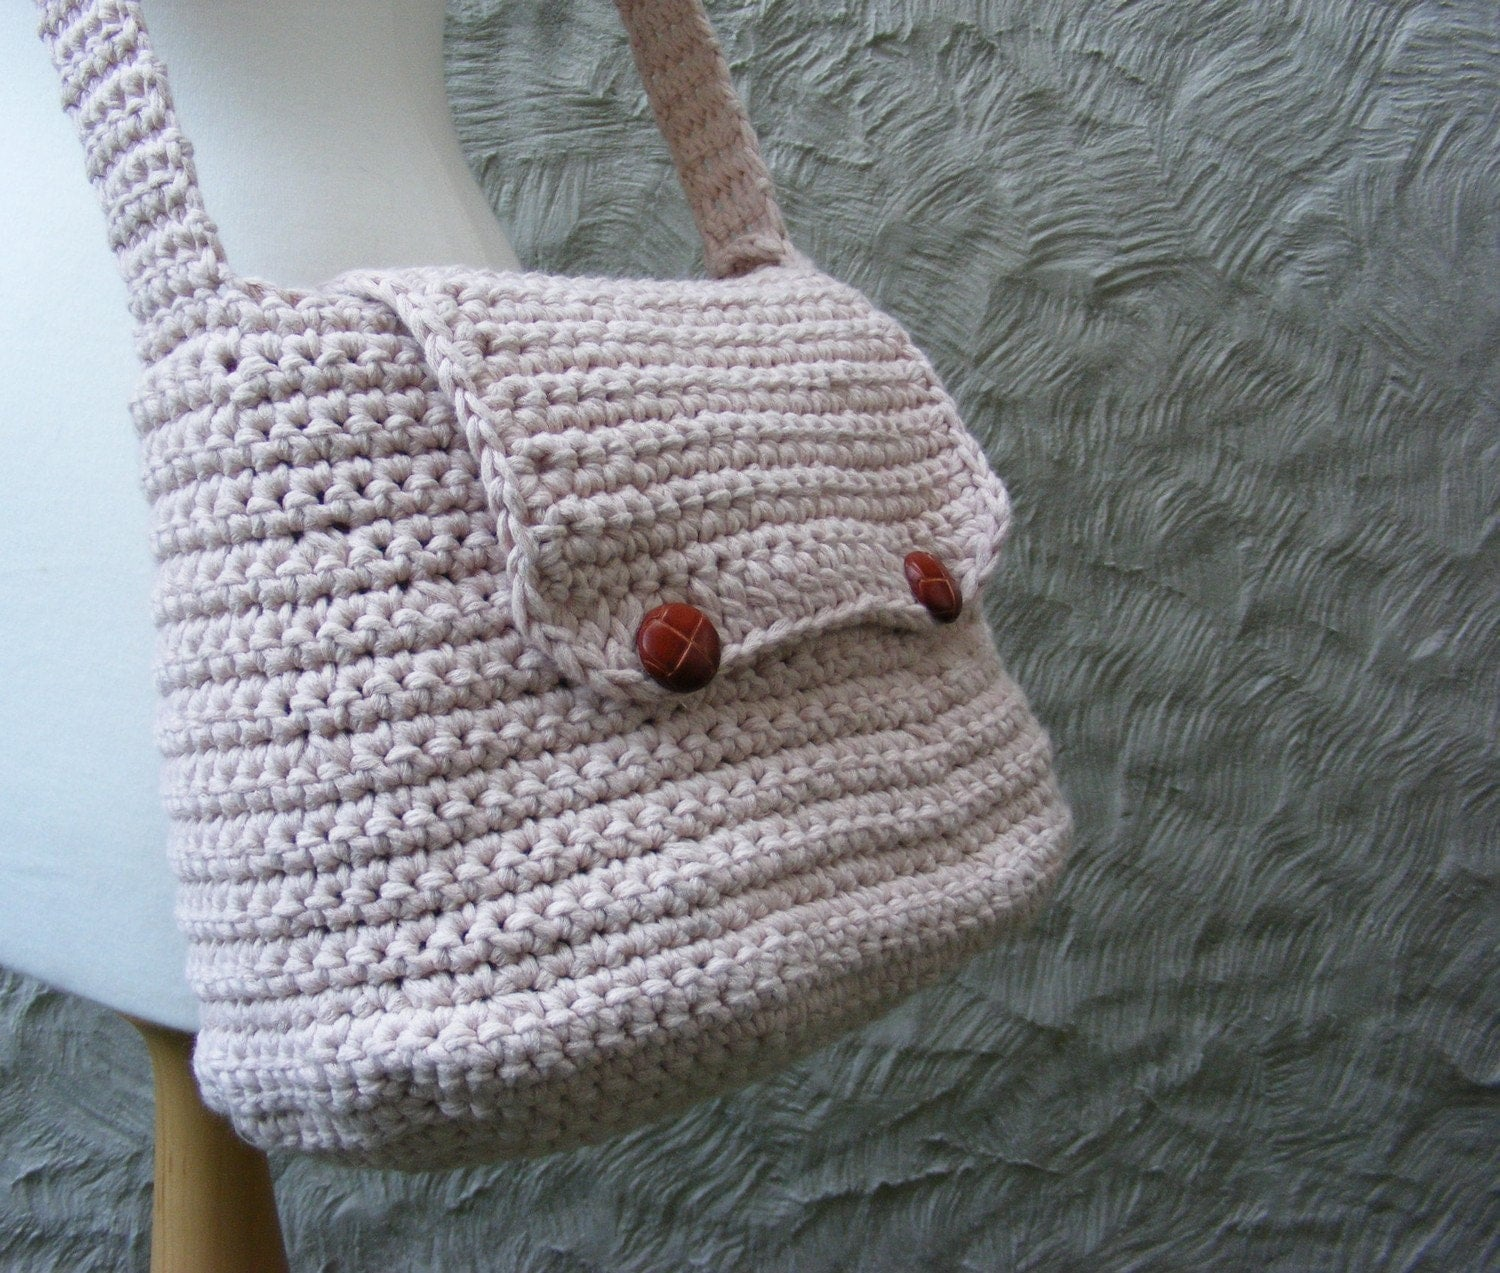 Free Crochet Handbag Patterns : CROCHETED HANDBAG PATTERNS ? Free Patterns